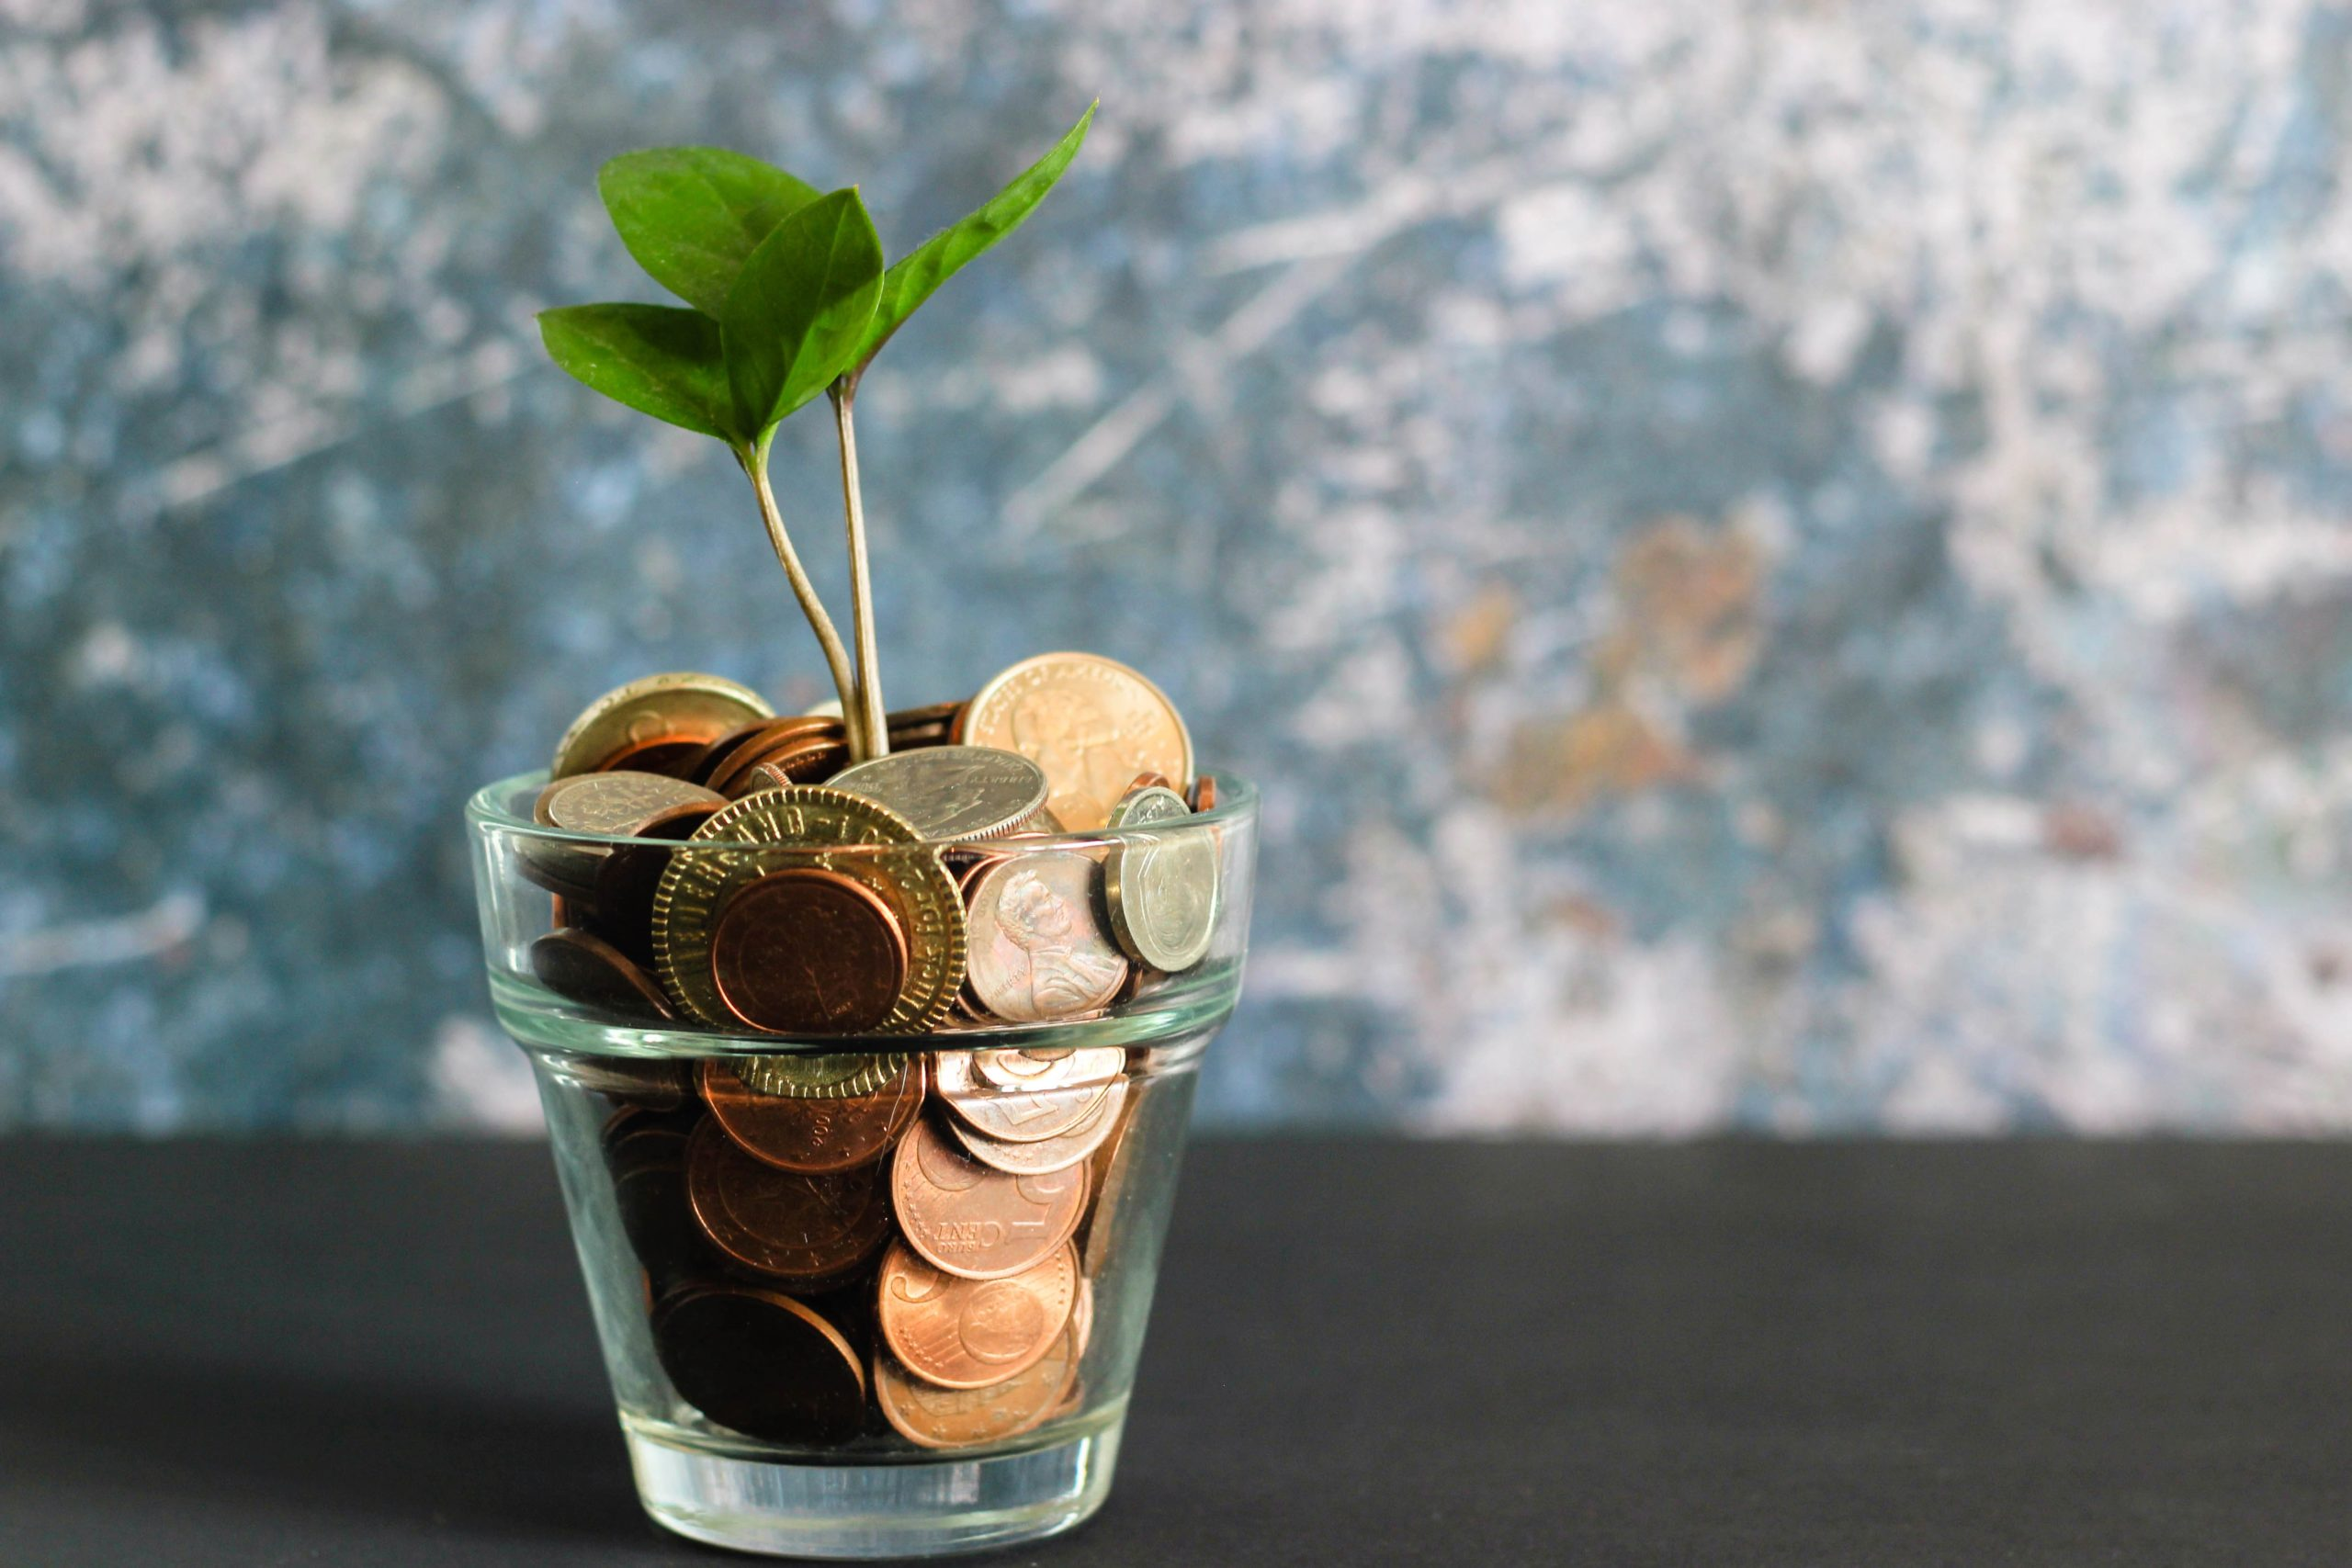 Photo of a plant in a glass with coins